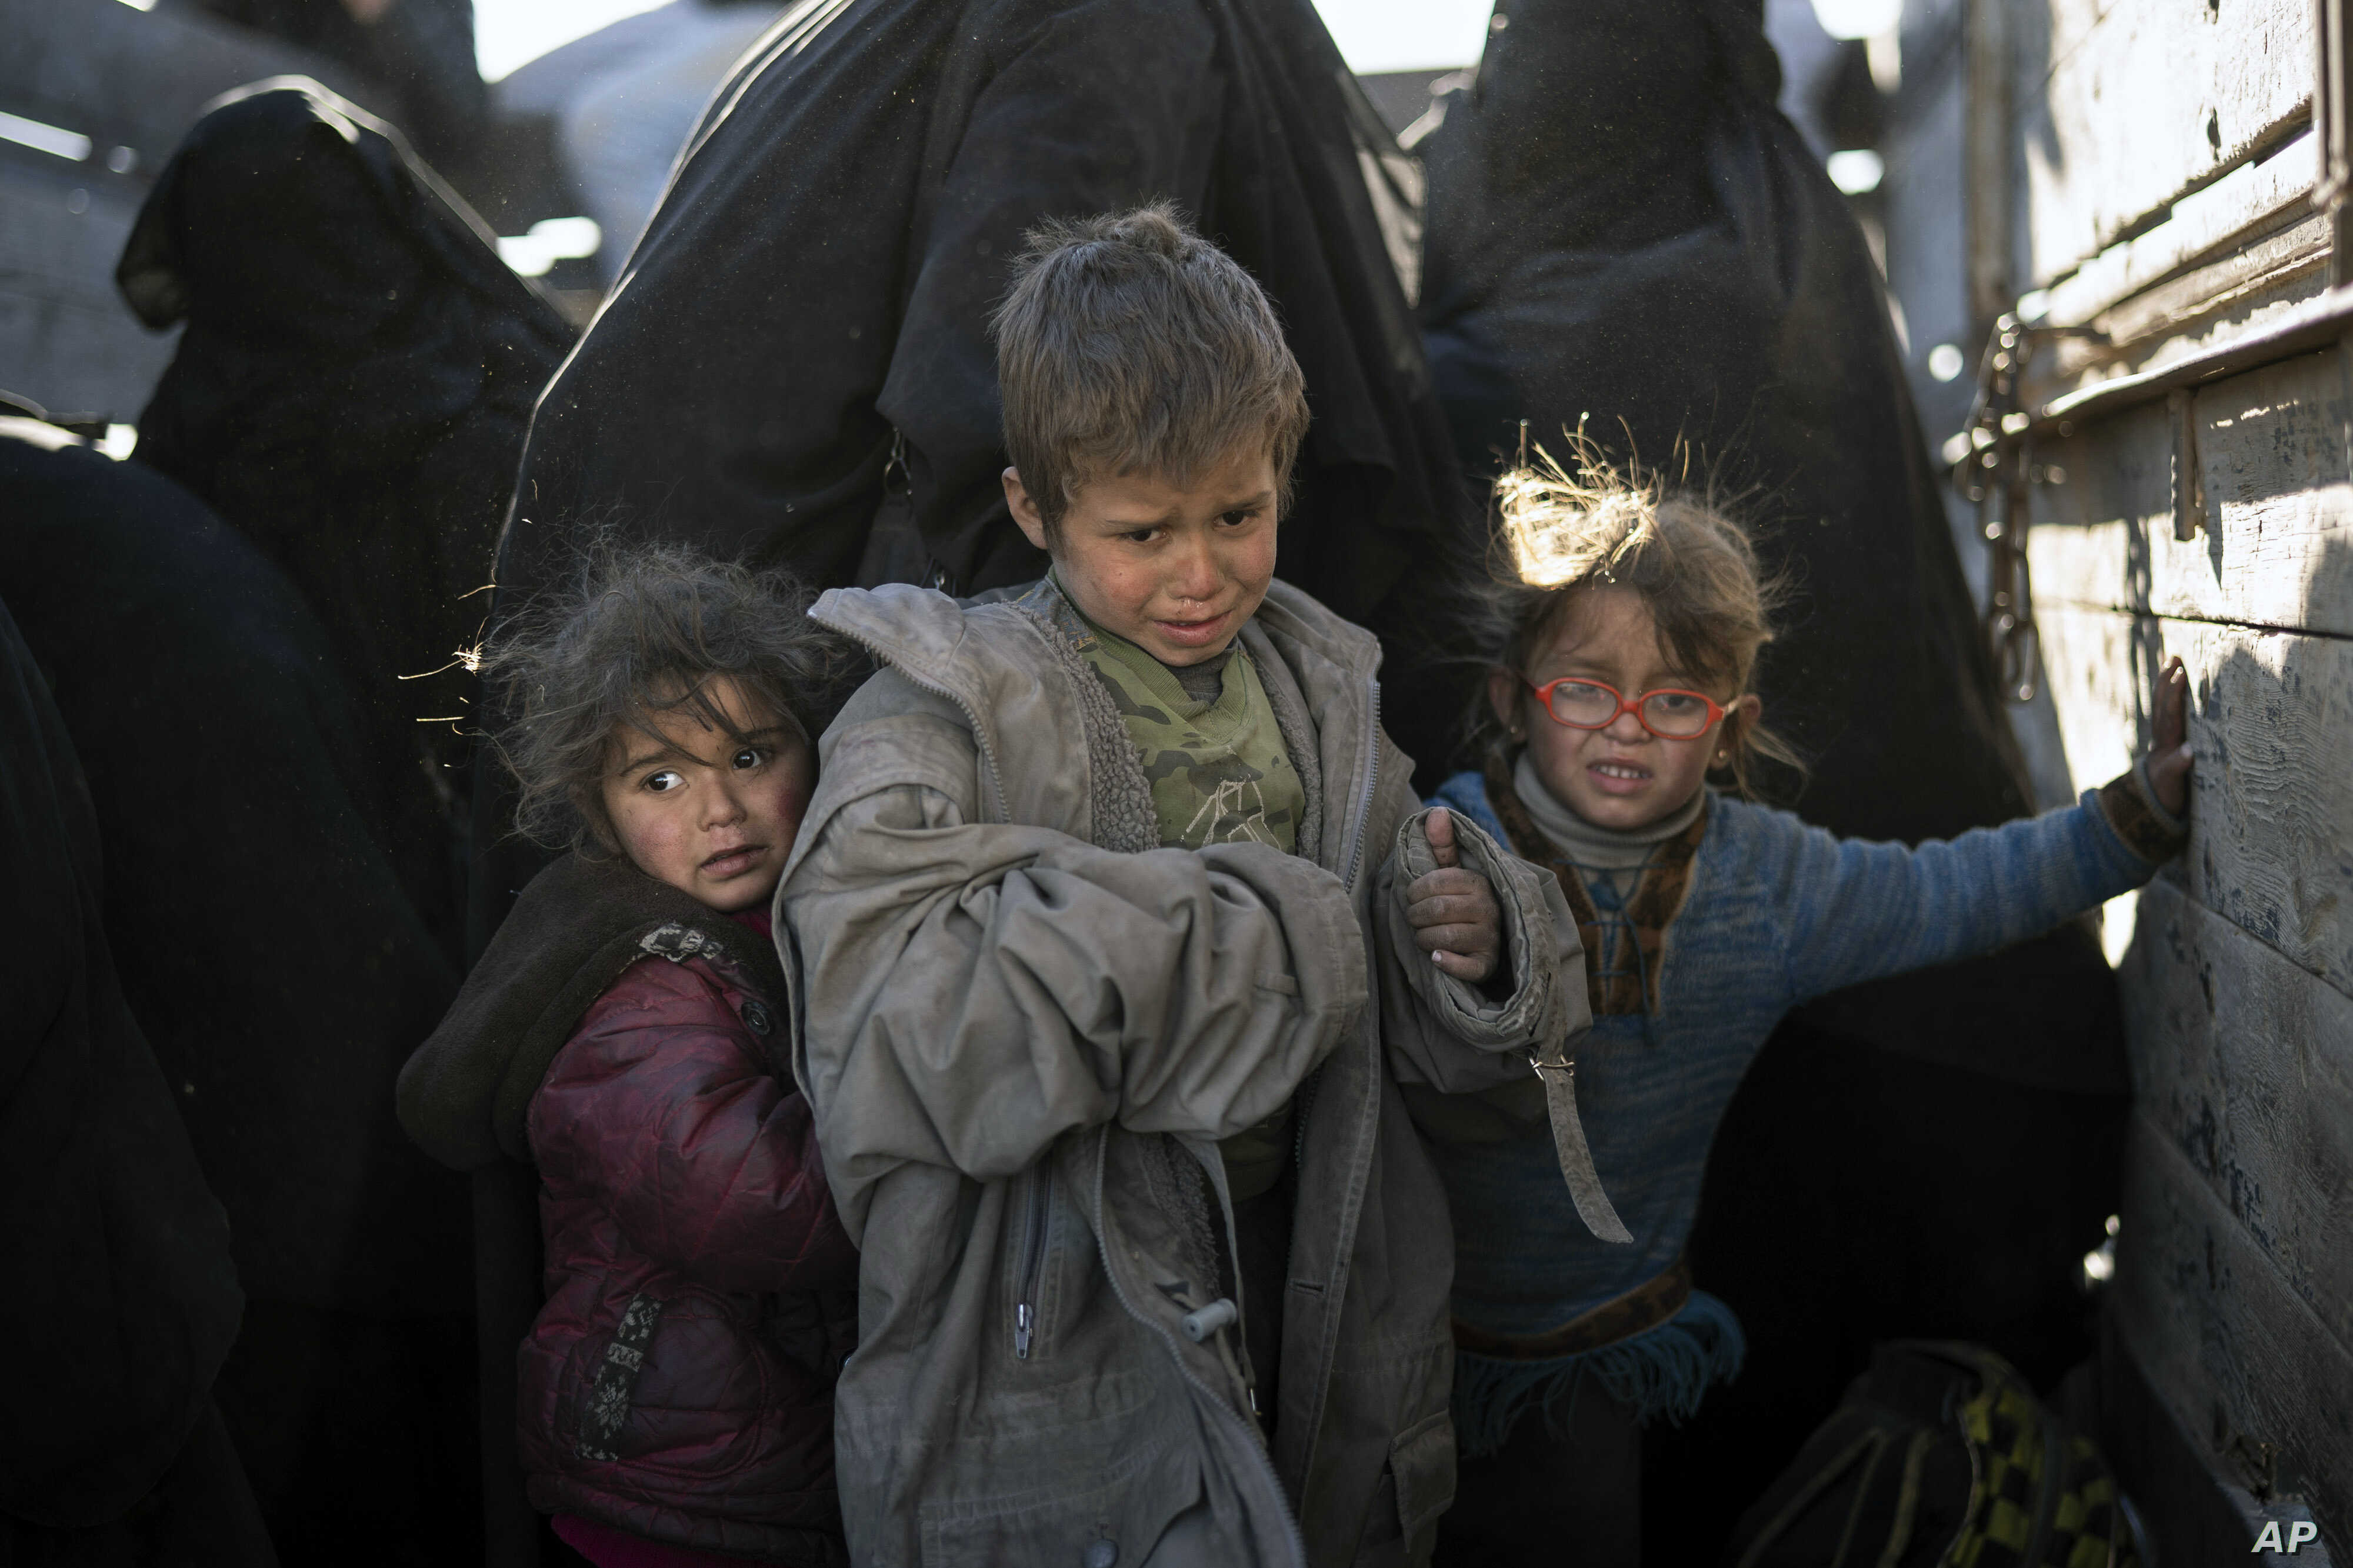 Women and children exit the back of a truck as they arrive at a U.S.-backed Syrian Democratic Forces (SDF) screening area after being evacuated out of the last territory held by Islamic State militants, in the desert outside Baghuz, Syria, March 1, 2